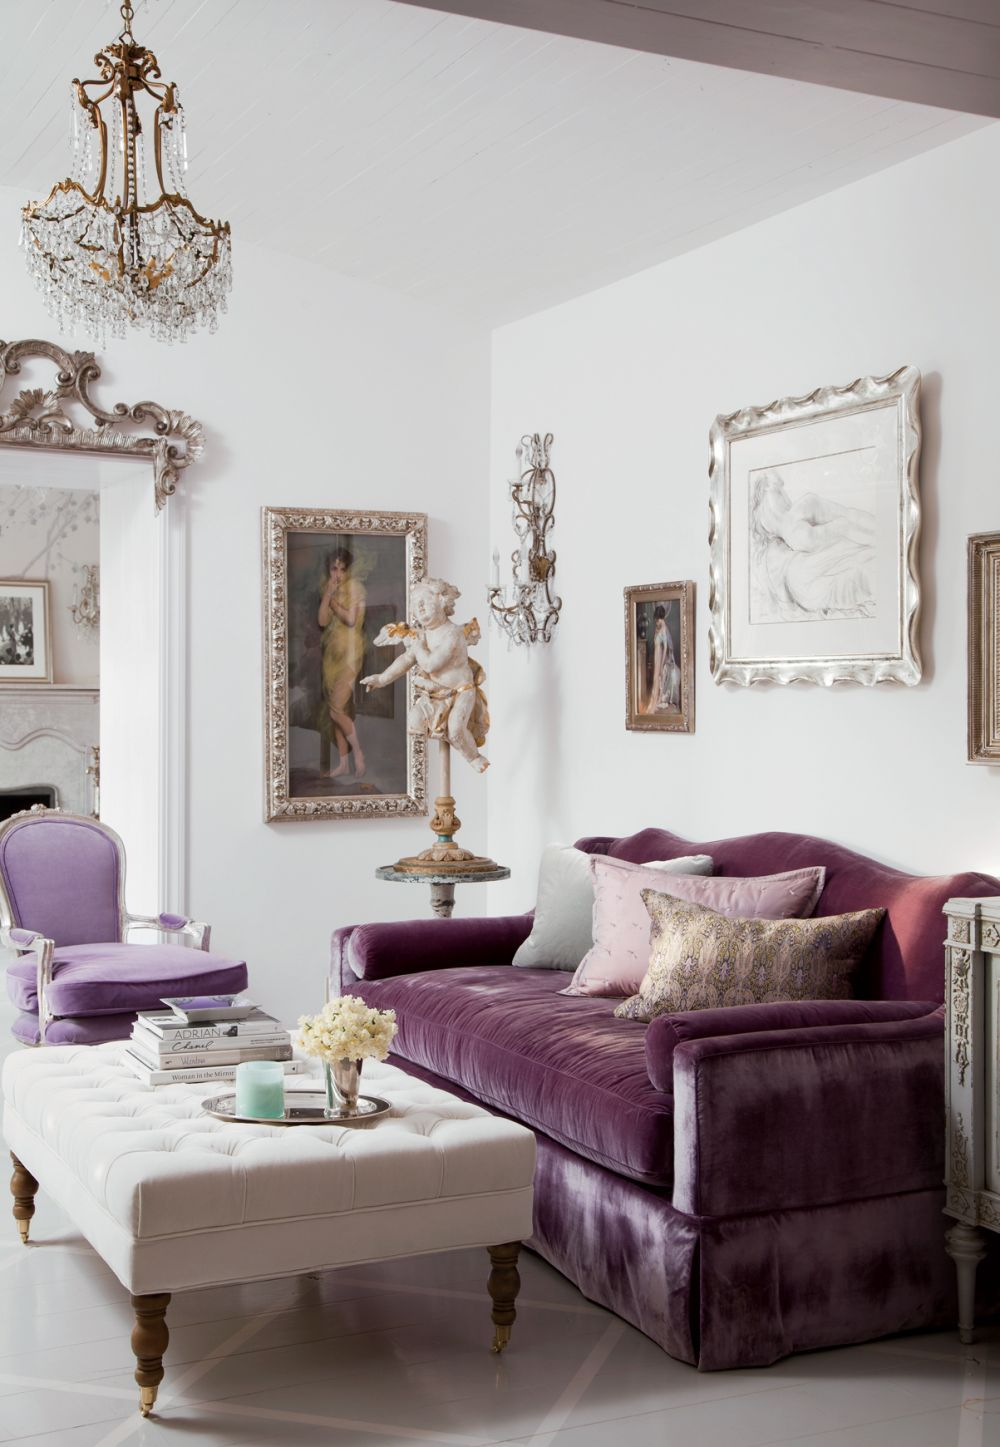 Home Decor Decorating Ideas and House